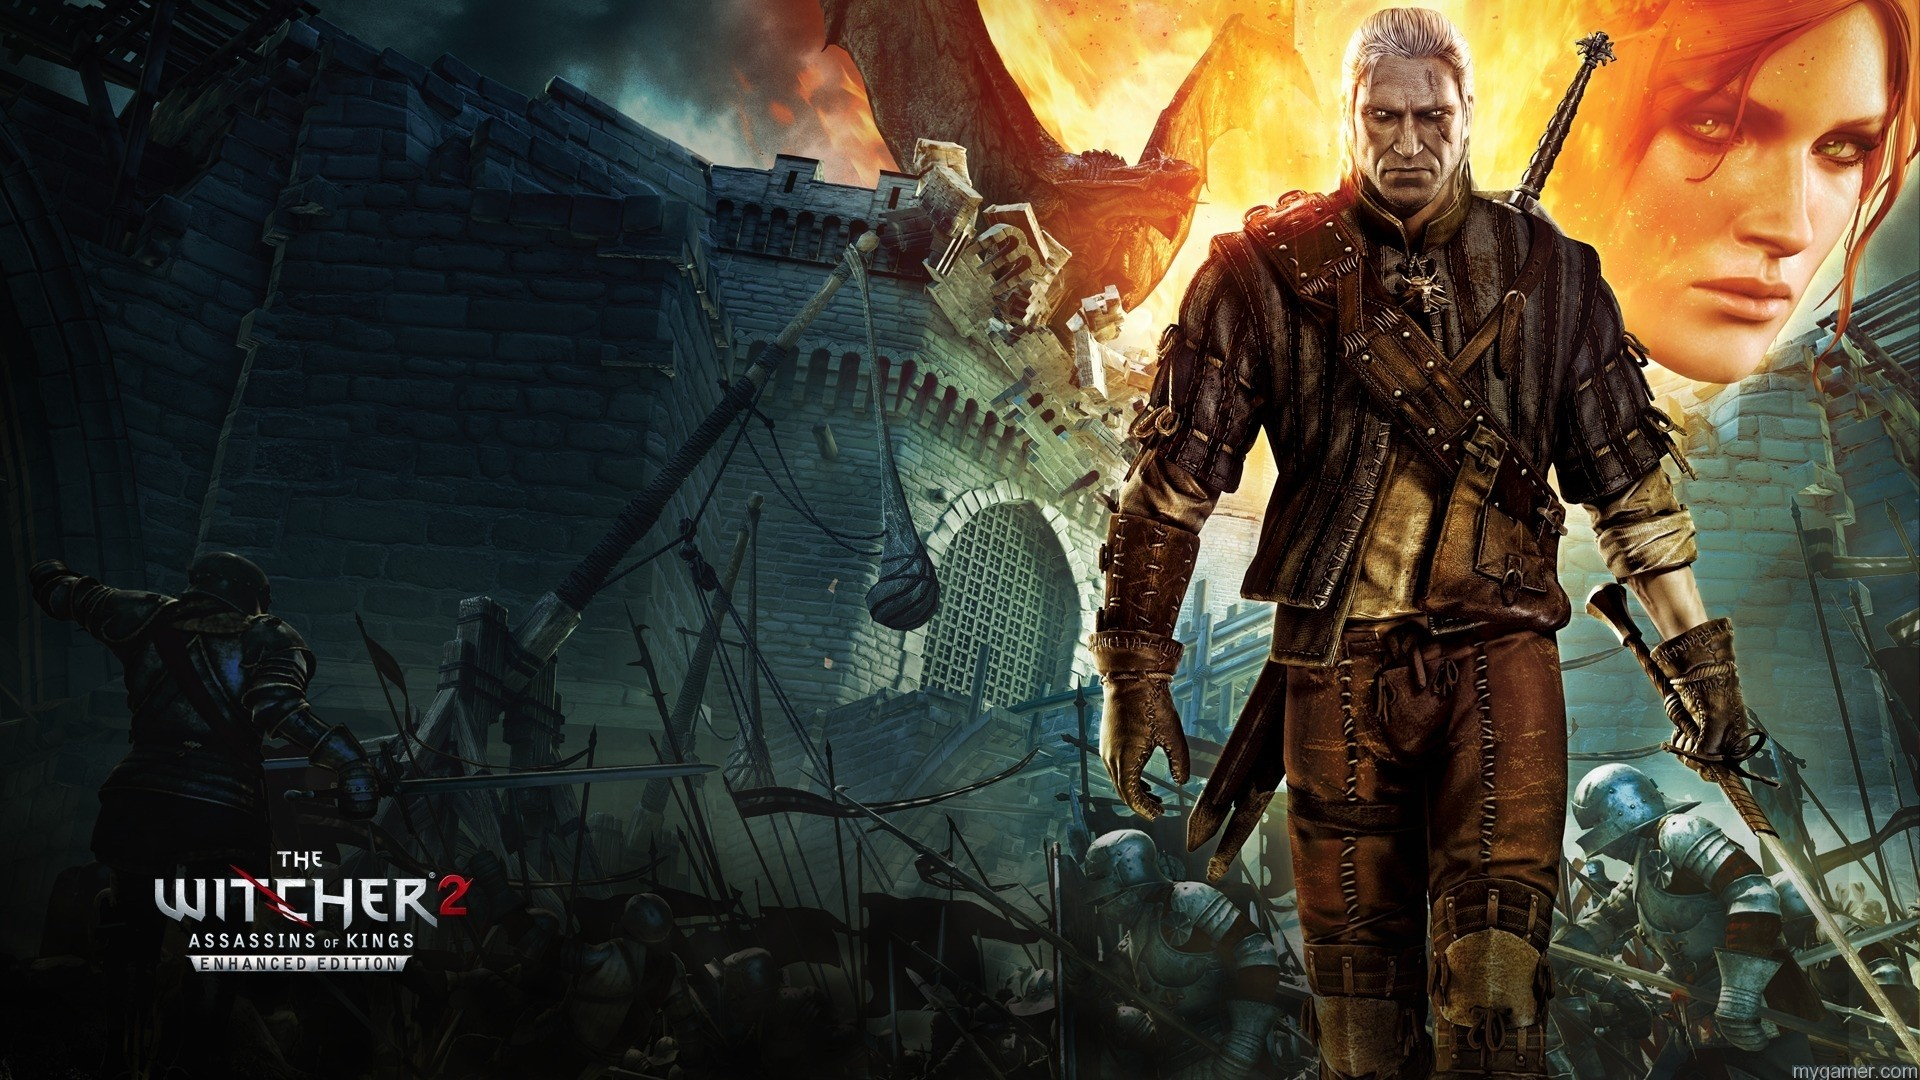 witcher-2-teaser-bild-1419346828 Xbox One Backwards Compatibility Gets Updated - Witcher 2 Is Also Currently Free Xbox One Backwards Compatibility Gets Updated – Witcher 2 Is Also Currently Free witcher 2 teaser bild 1419346828